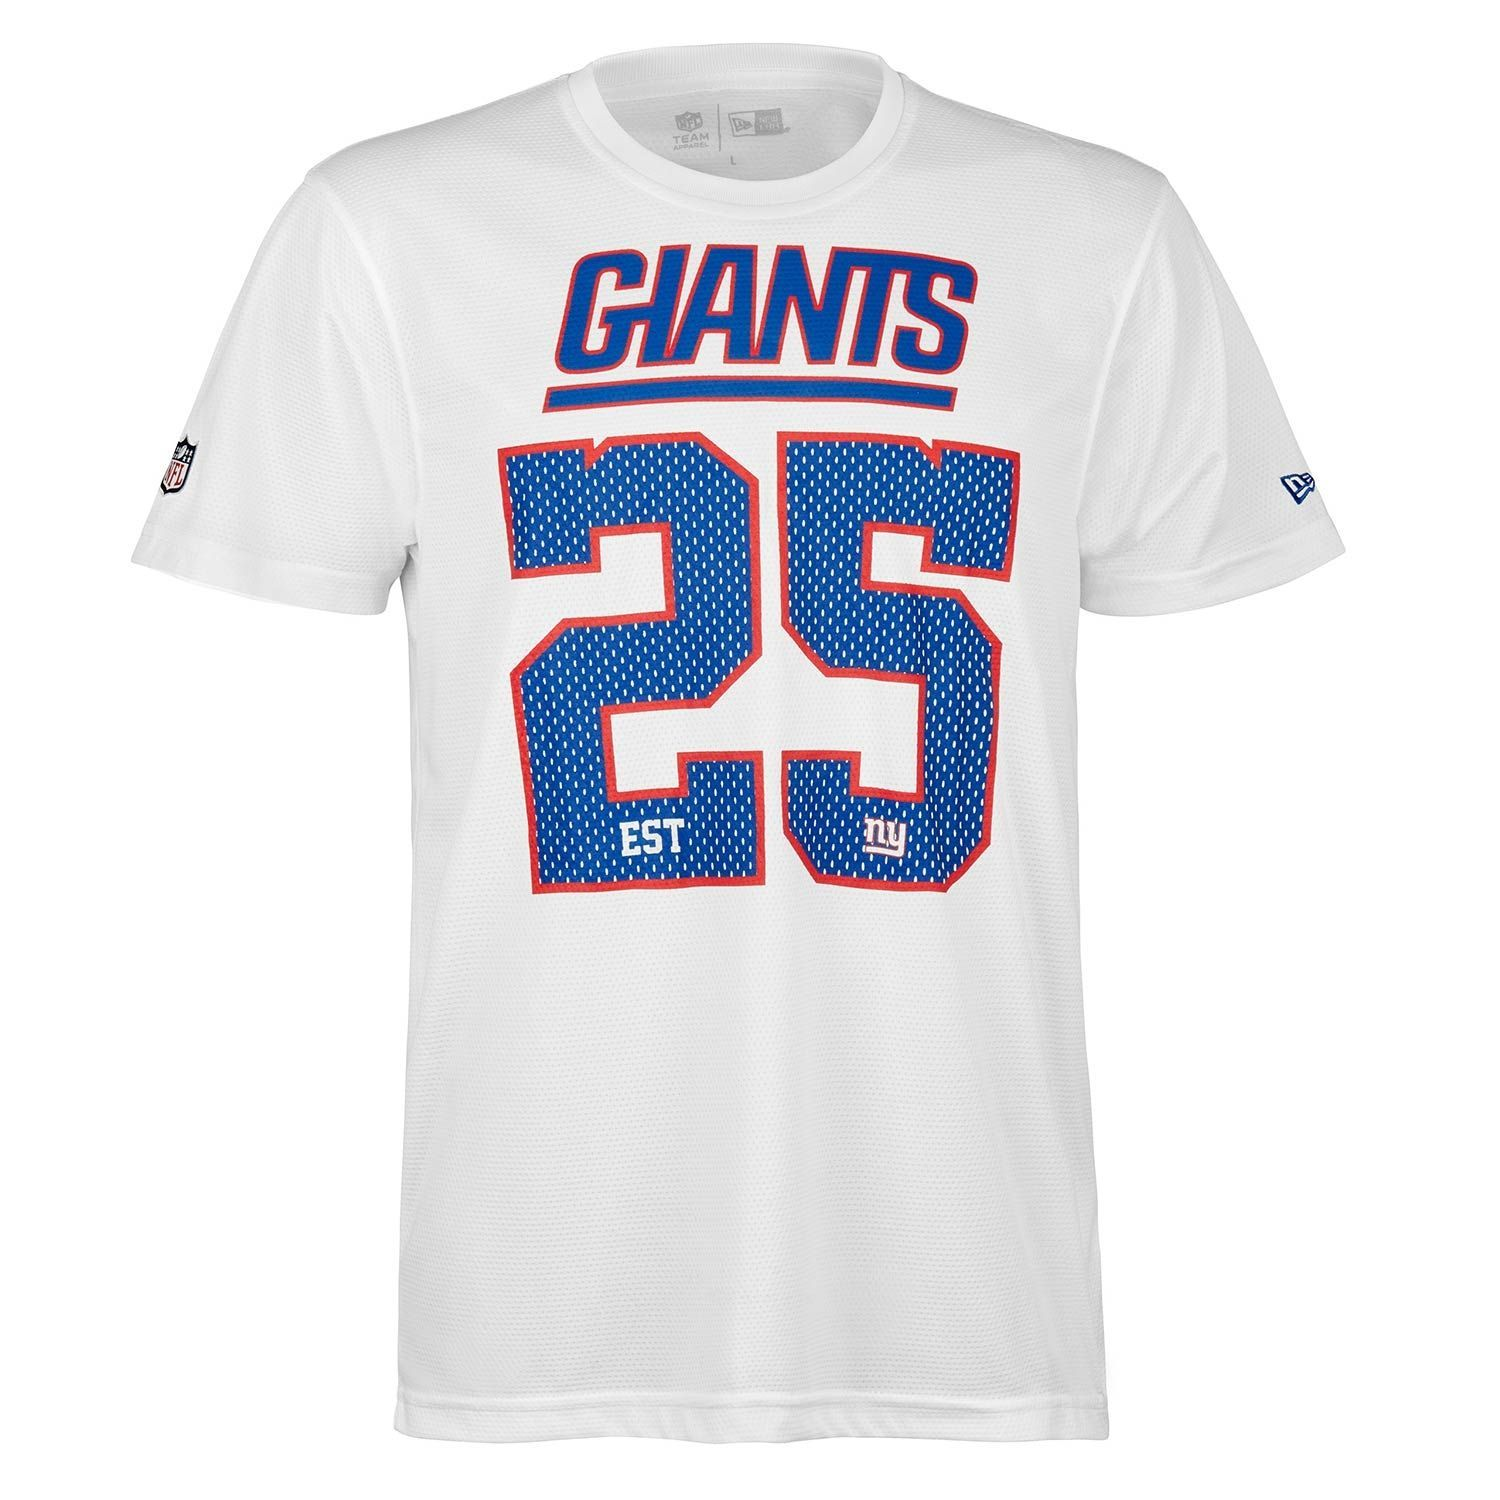 e10e3075 New York Giants Est. 25 Supporters Jersey NFL T-Shirt